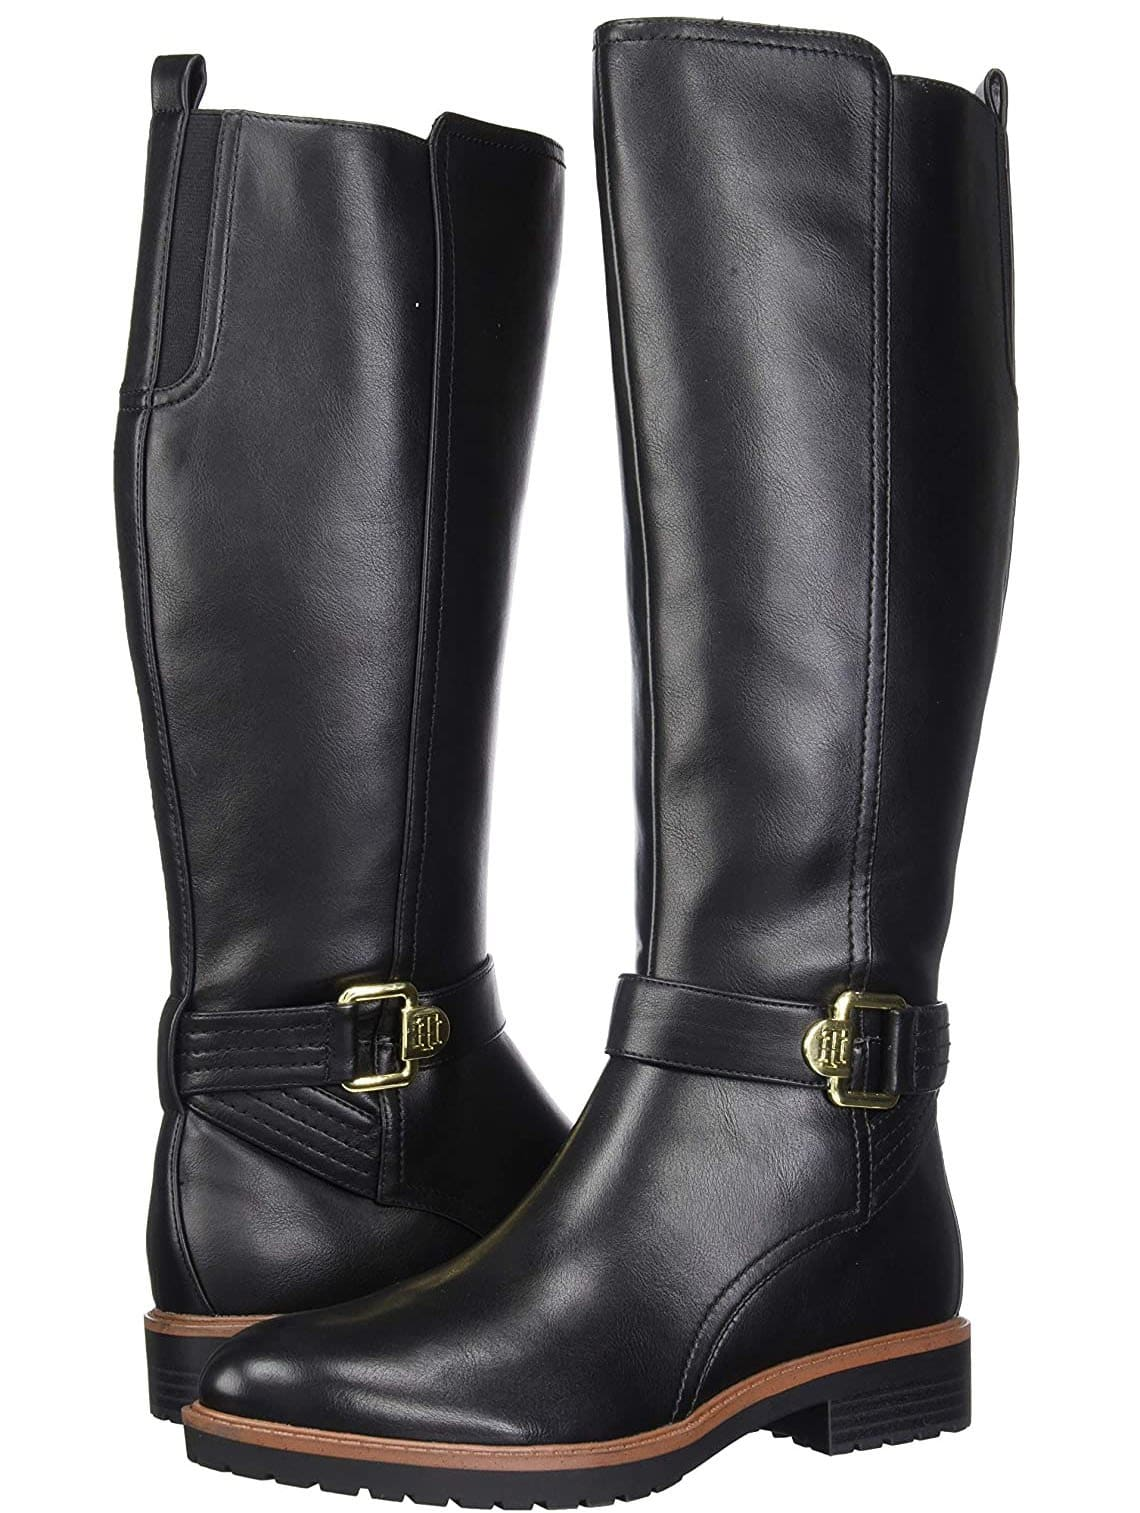 Tommy Hilfiger also has a selection of equestrian-style boots